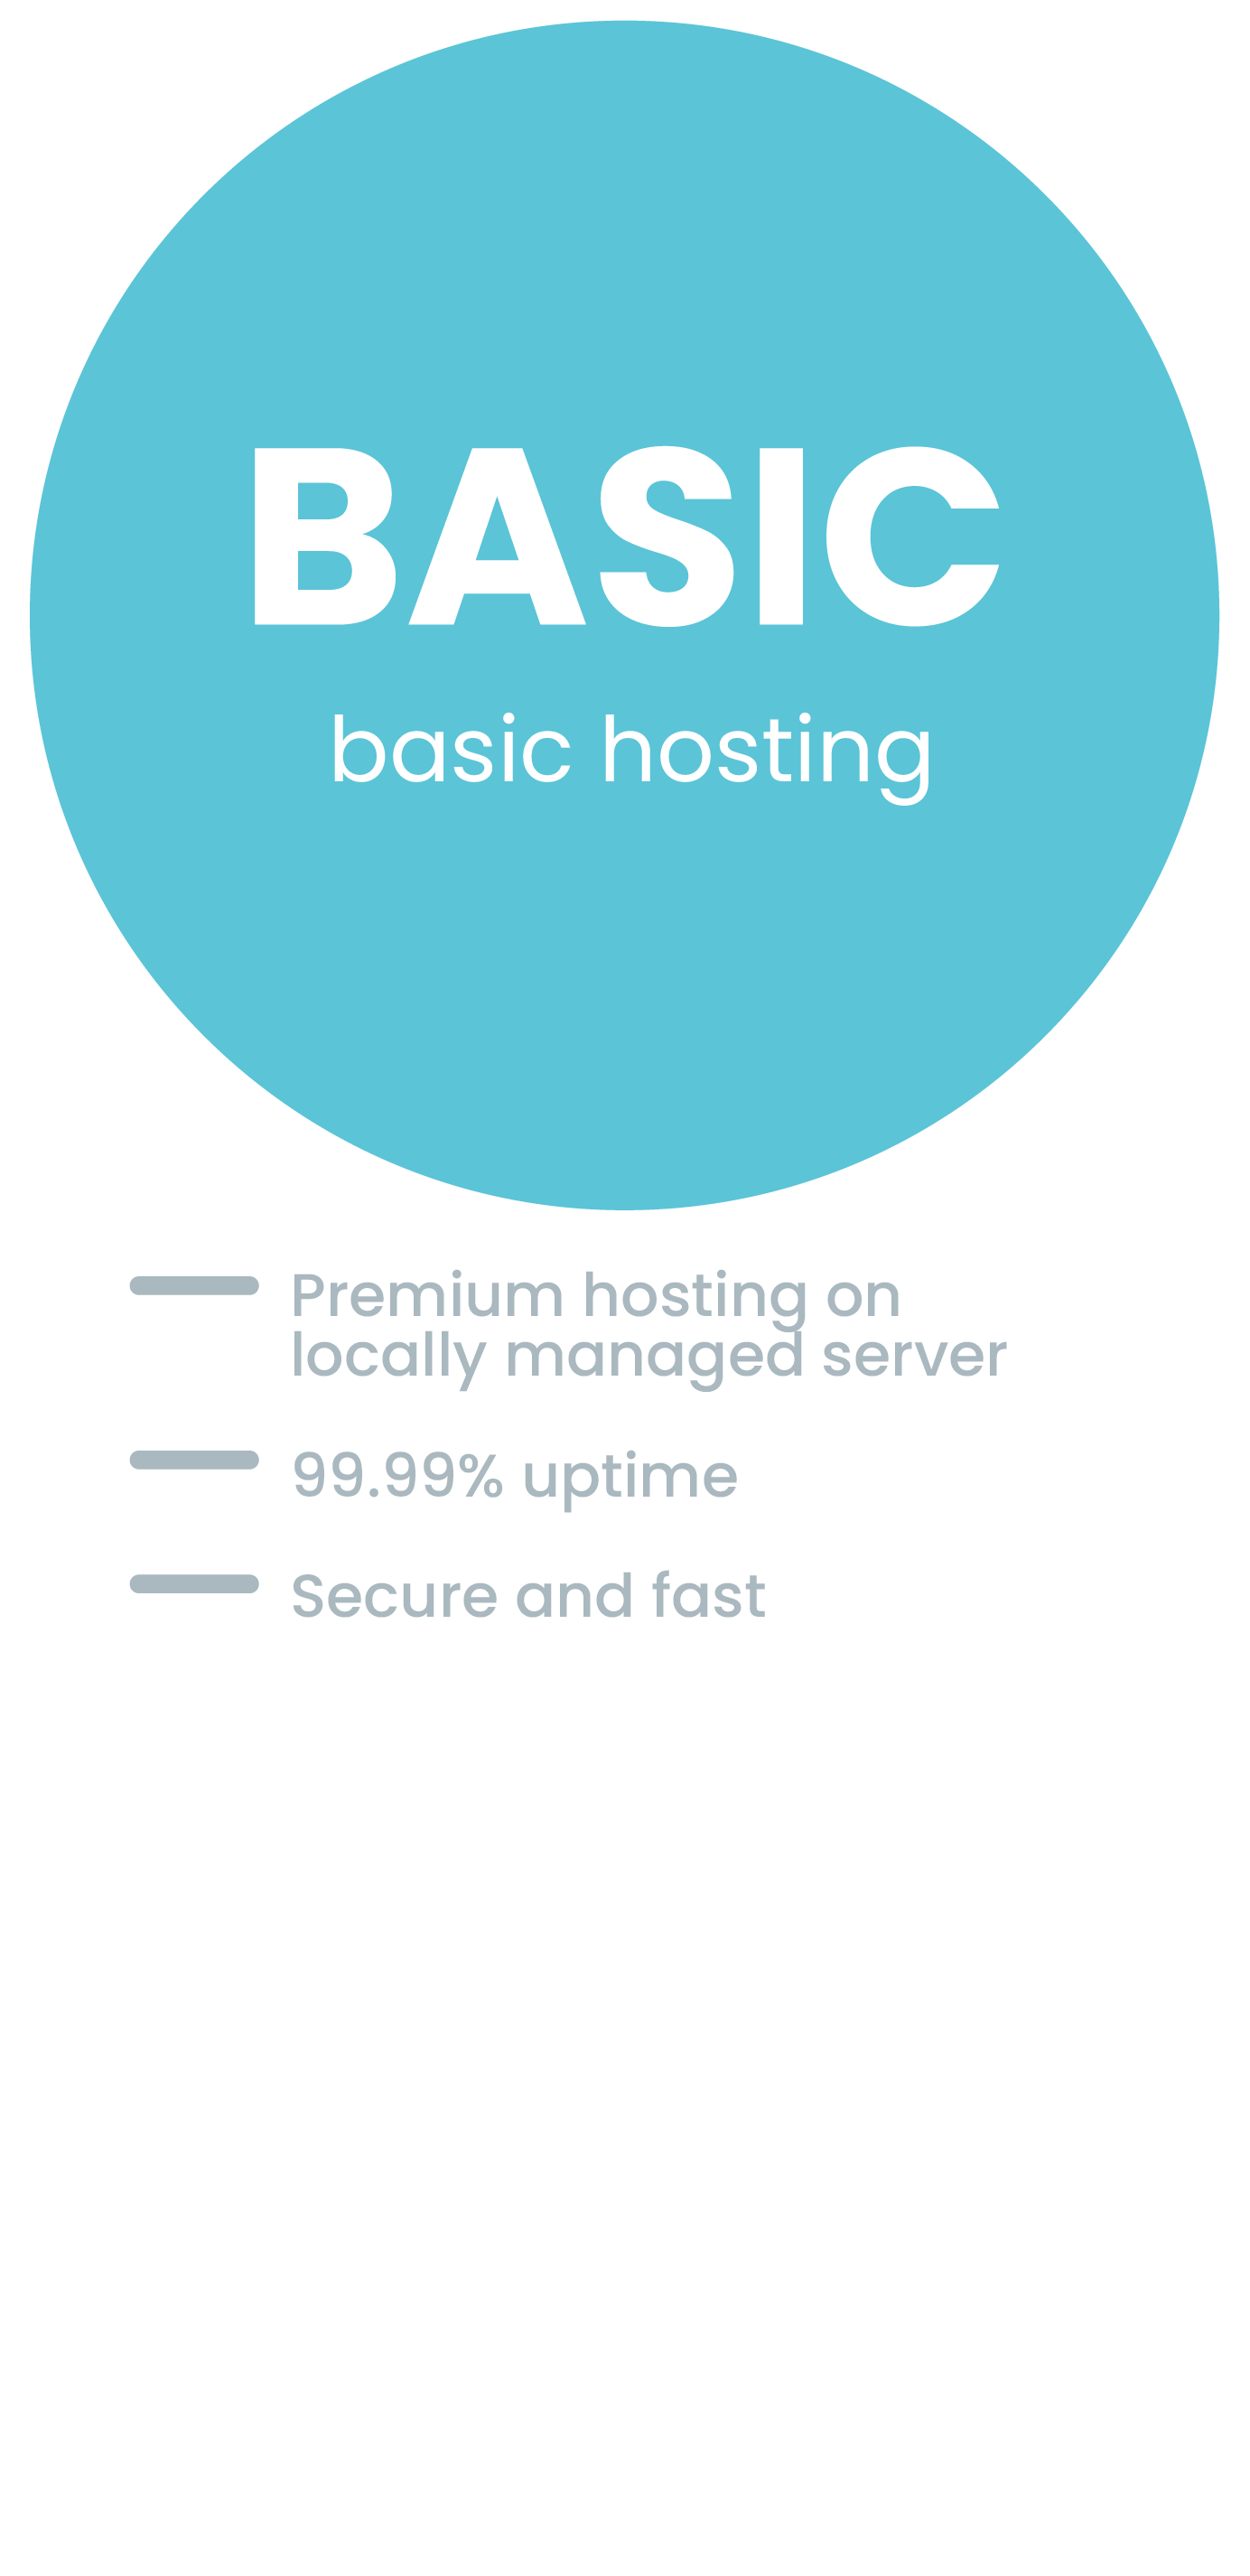 Basic Website Hosting Package Complete with 99.99% uptime